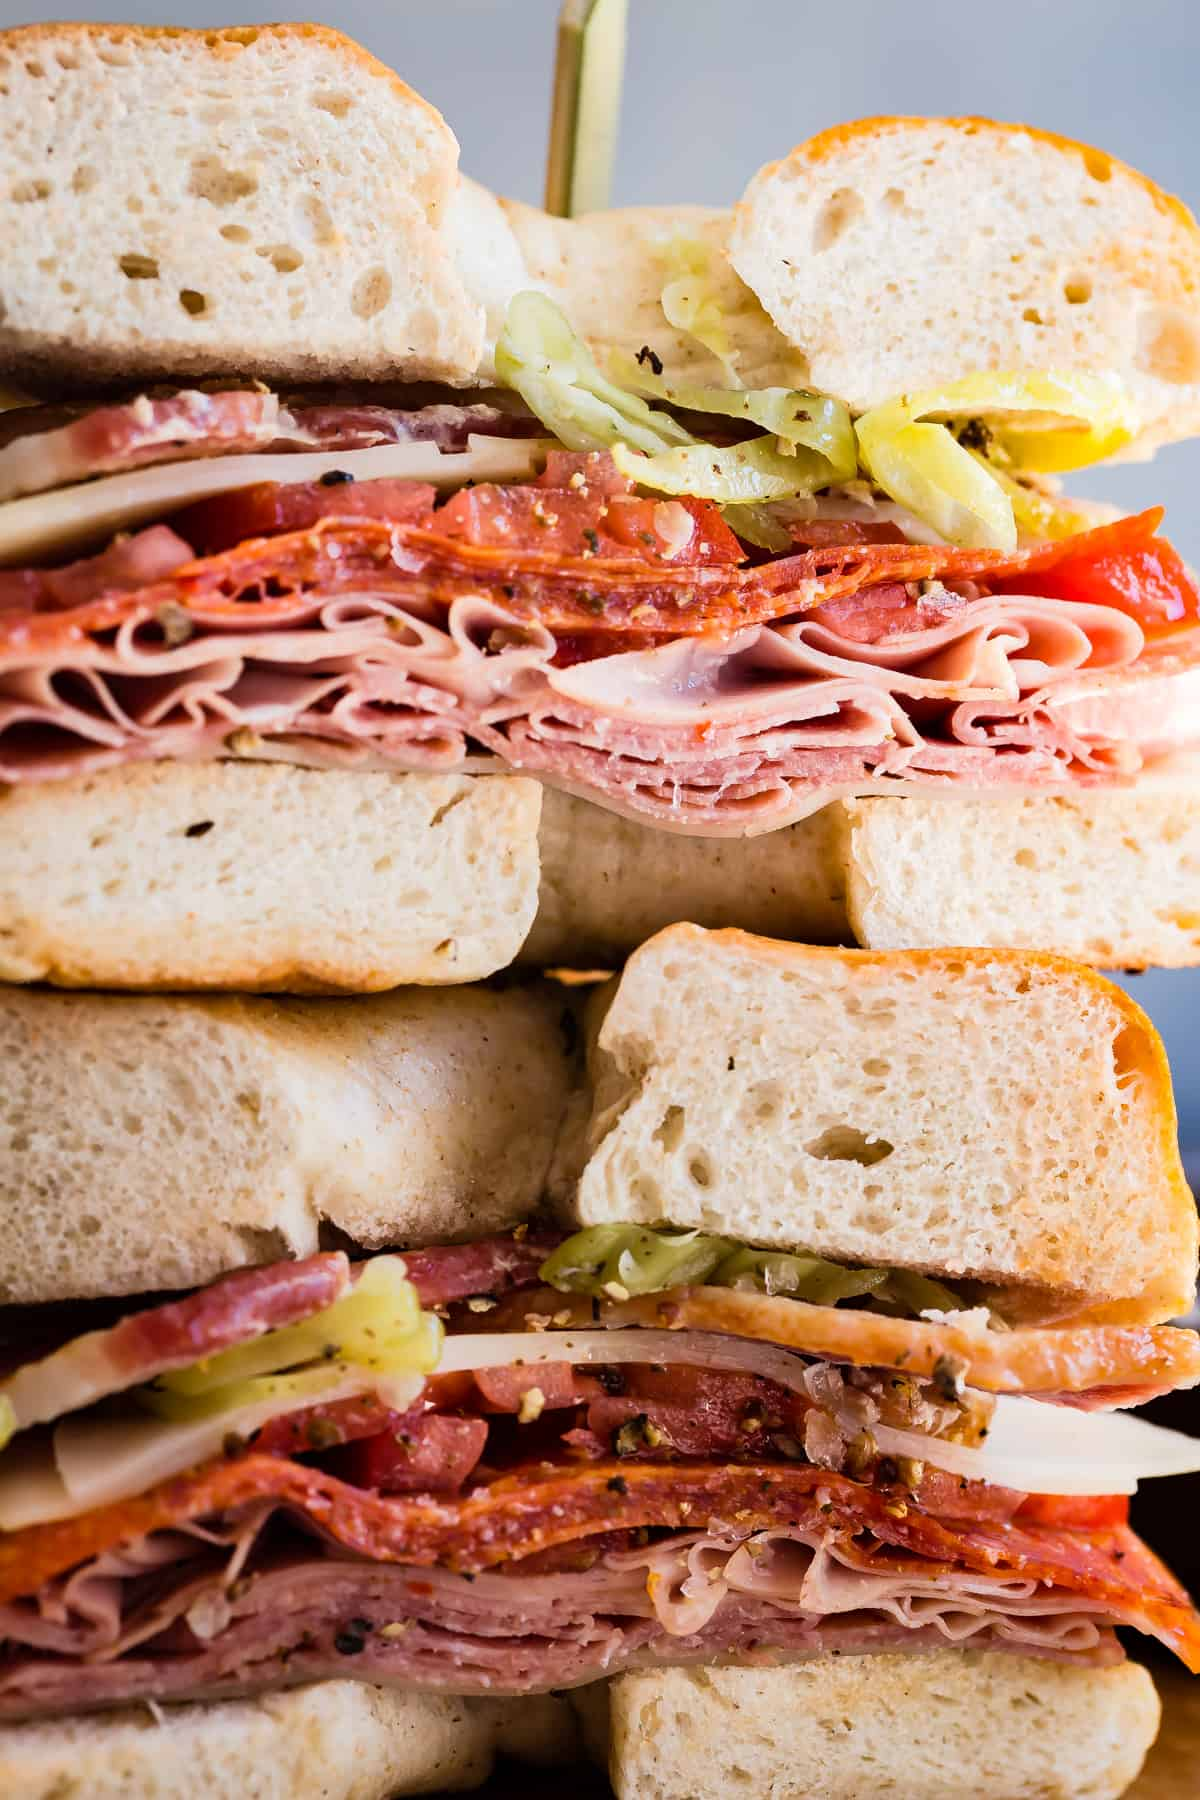 An epic bagel sandwich loaded with Italian meats and cheese!